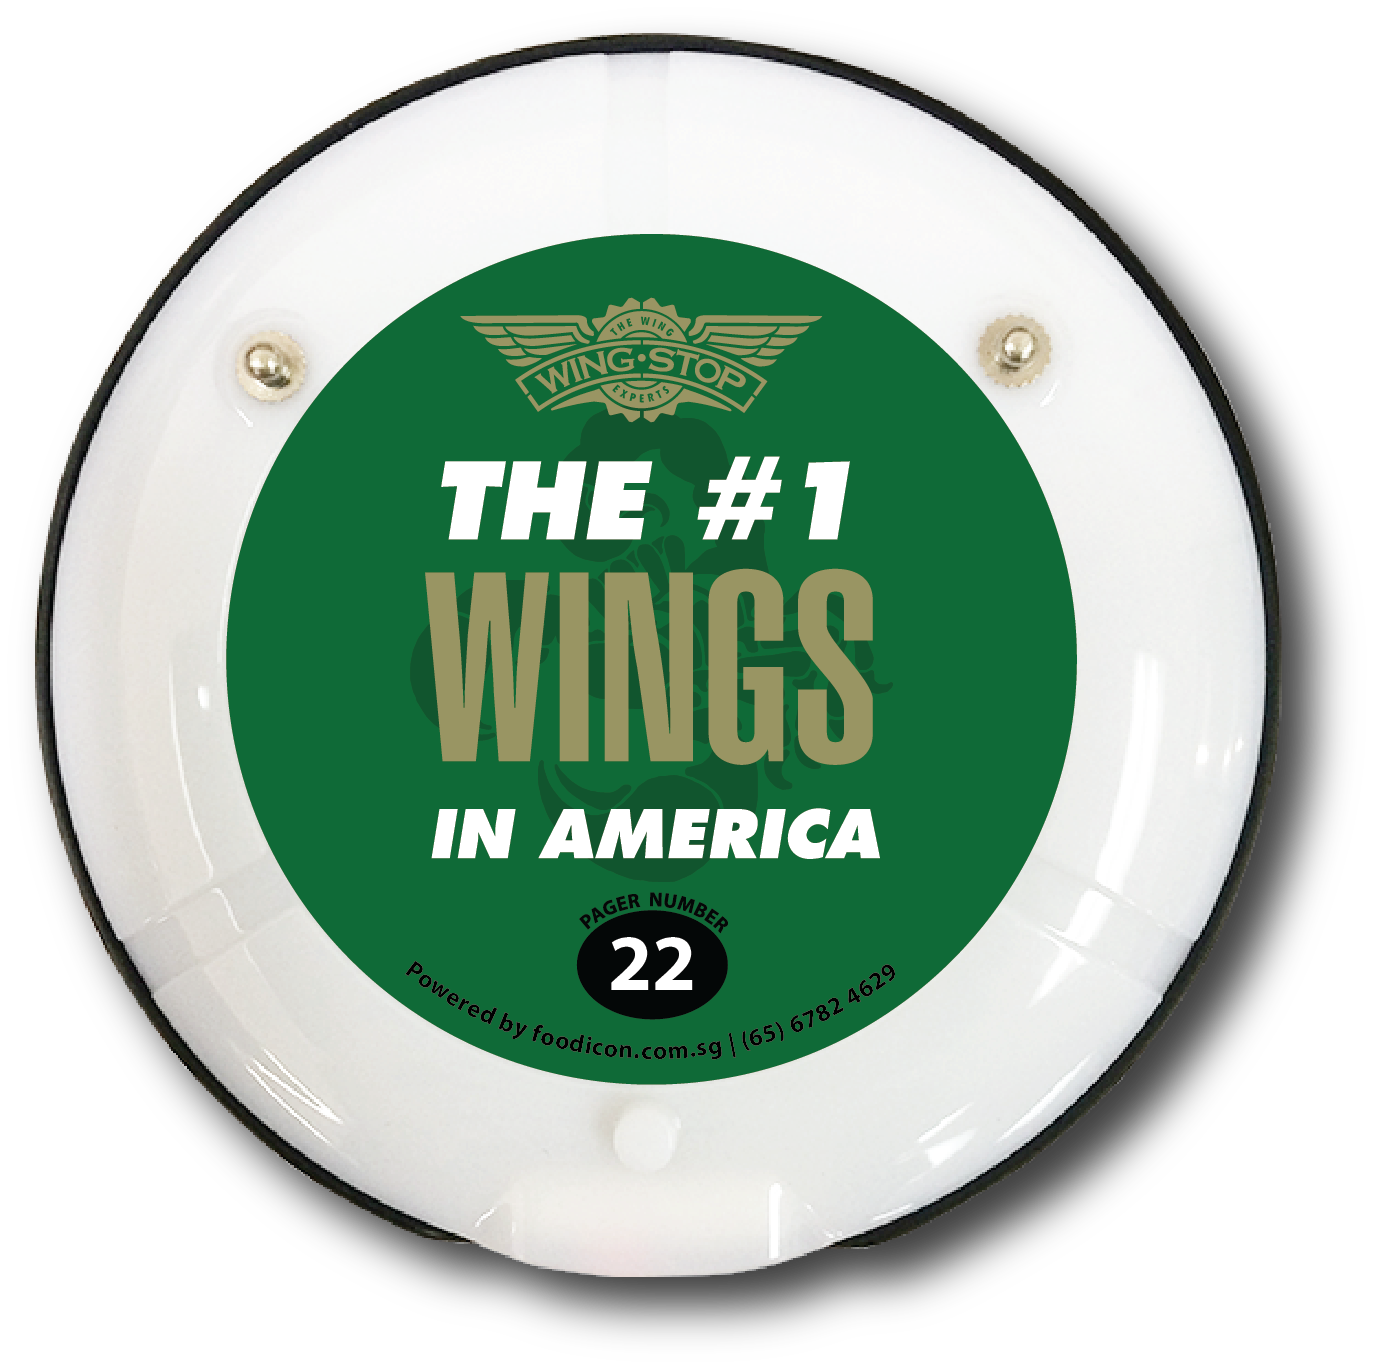 Food Icon Paging System - Wing Stop